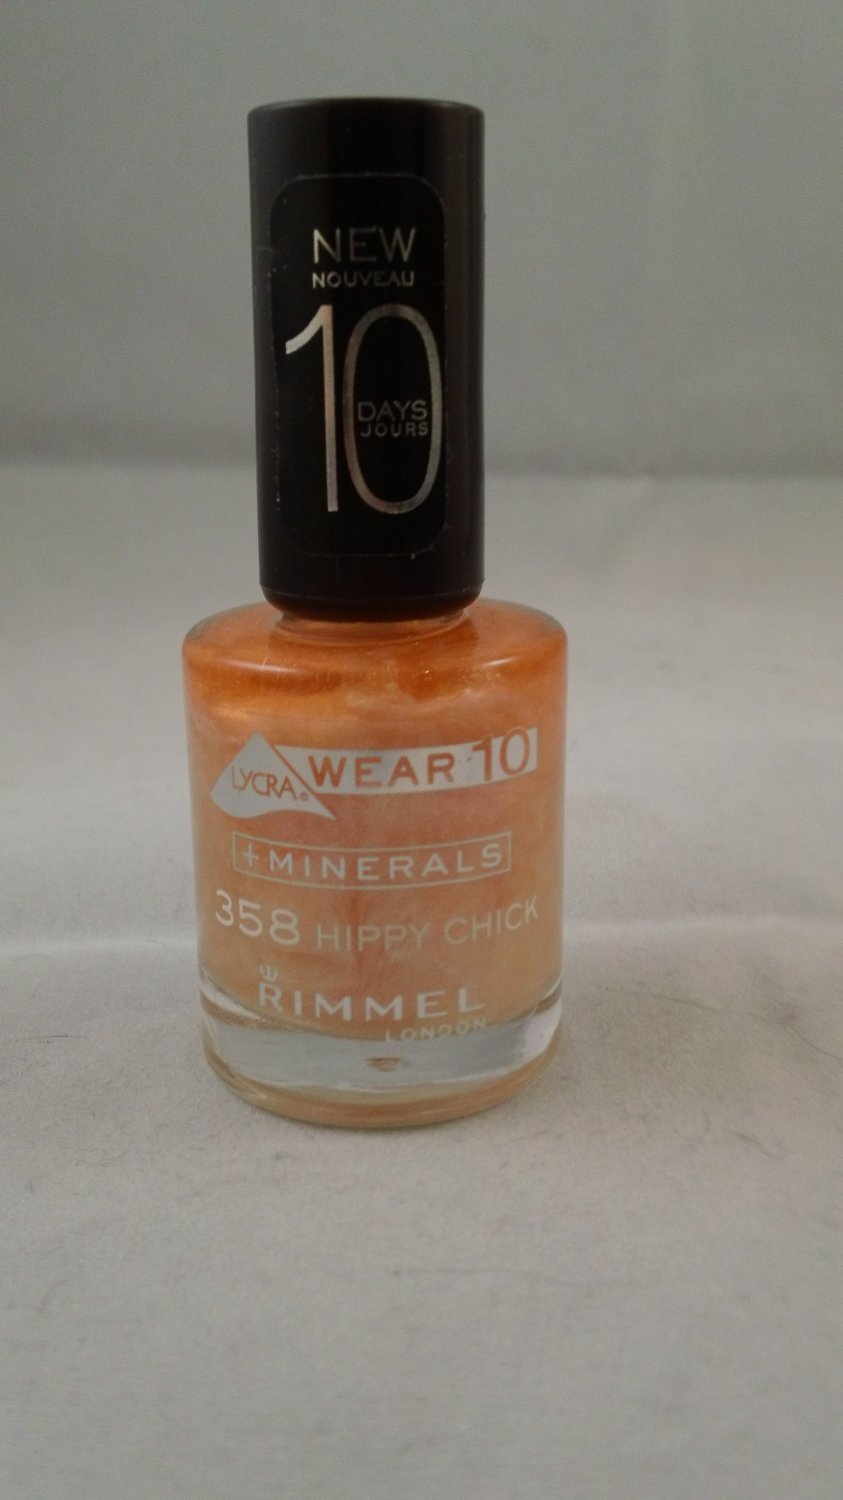 Rimmel London Lycra Wear 10 Day Mineral Nail Color Polish #358 Hippy Chick lacquer